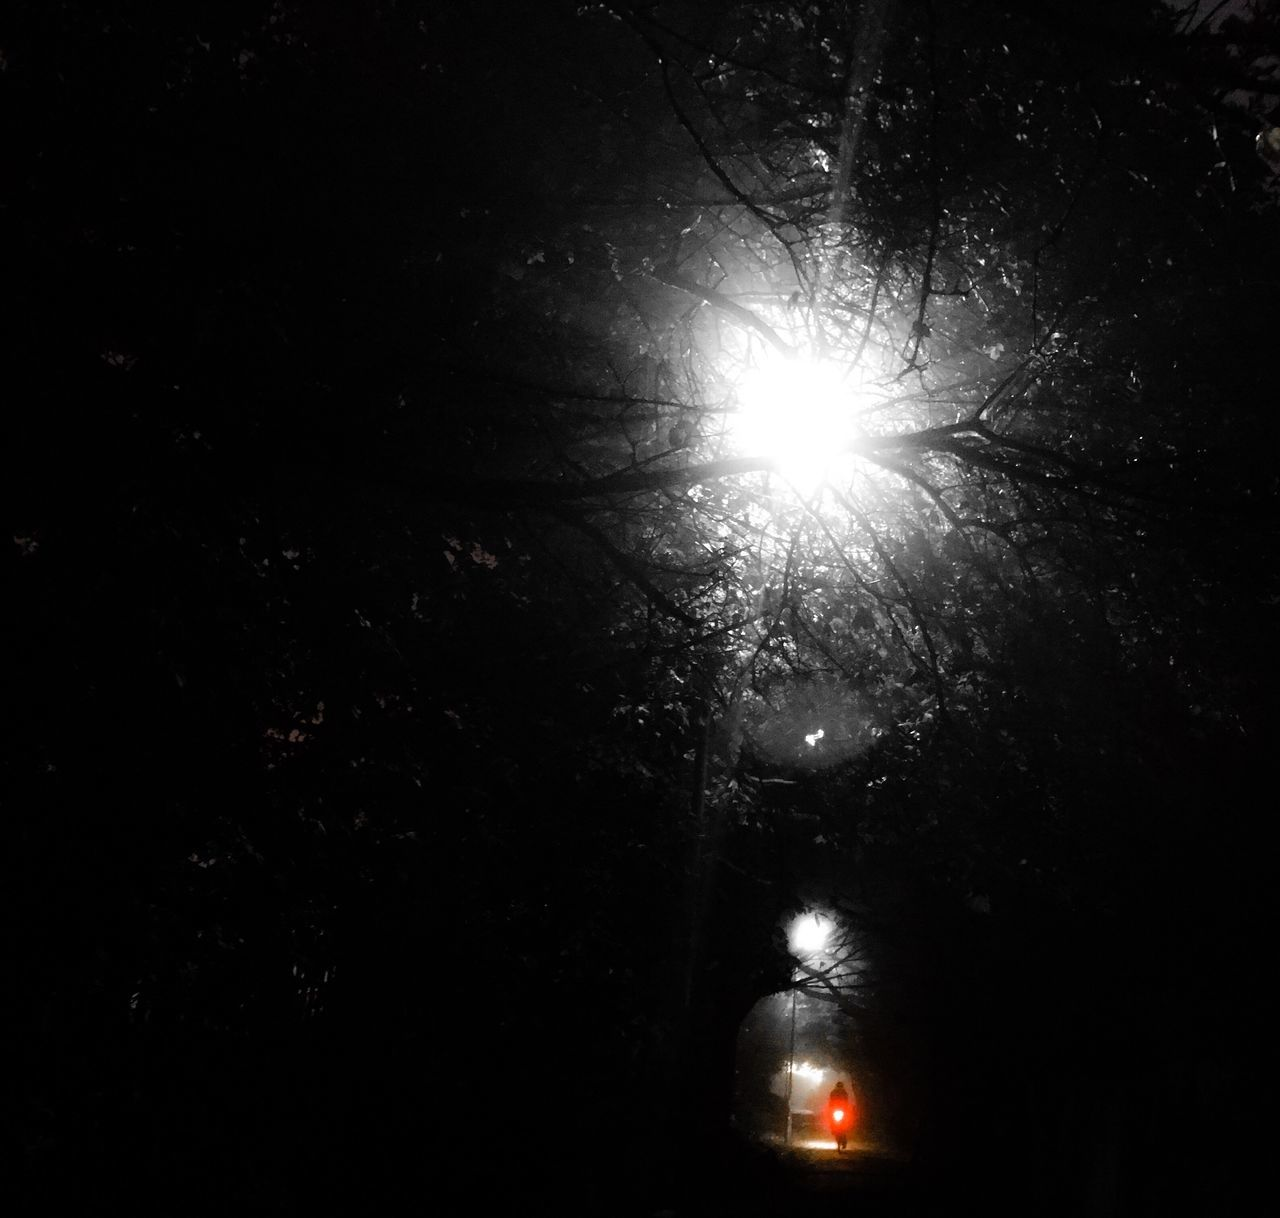 People And Places Red Light Alone In The Darkness Night Light Shine First Eyeem Photo